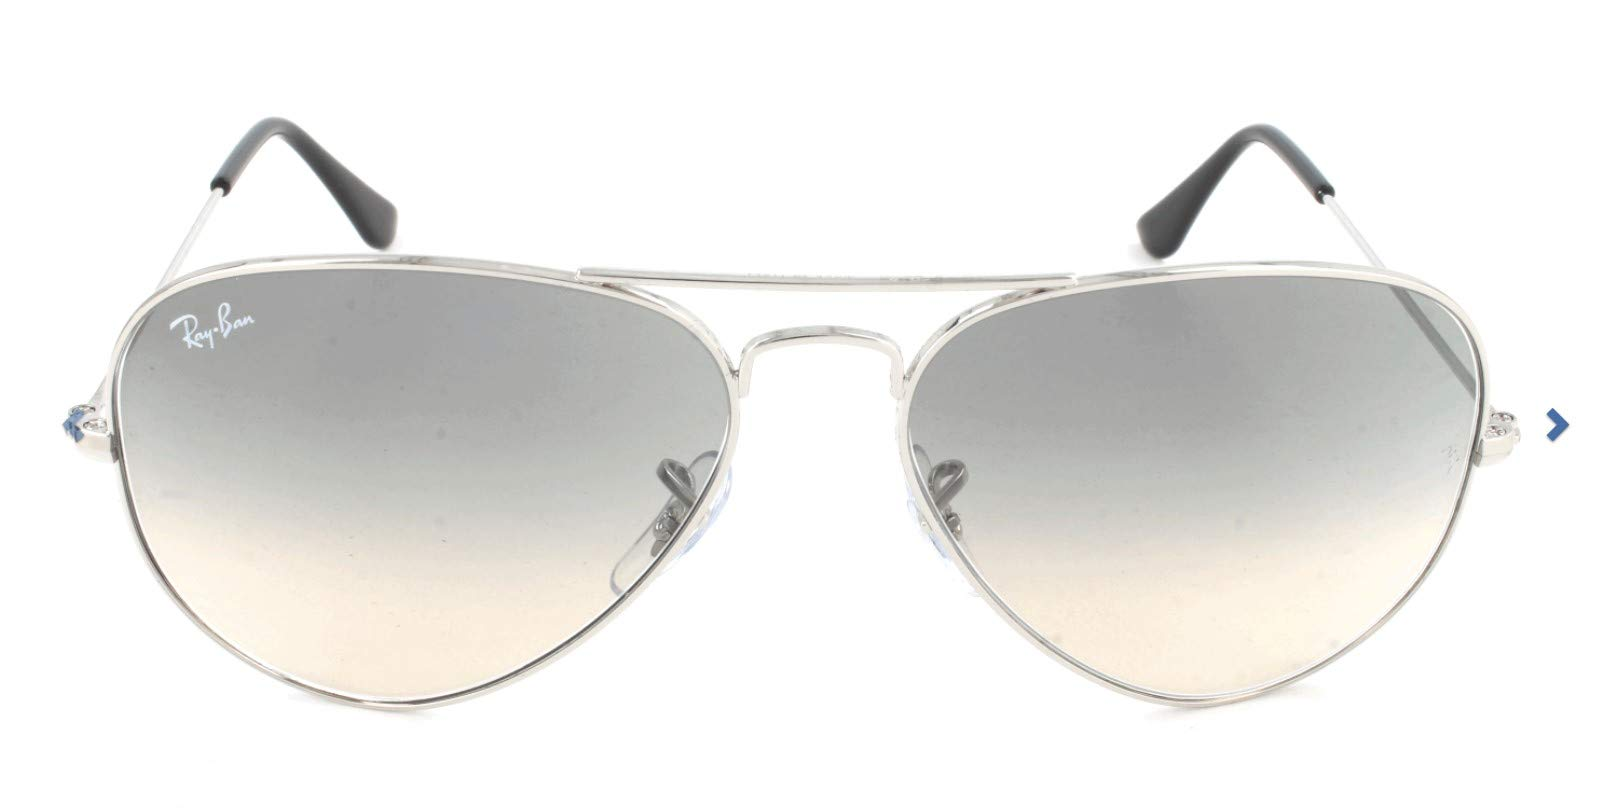 Ray-Ban Aviator Classic, Silver/ Crystal Grey Gradient, 55 mm by RAY-BAN